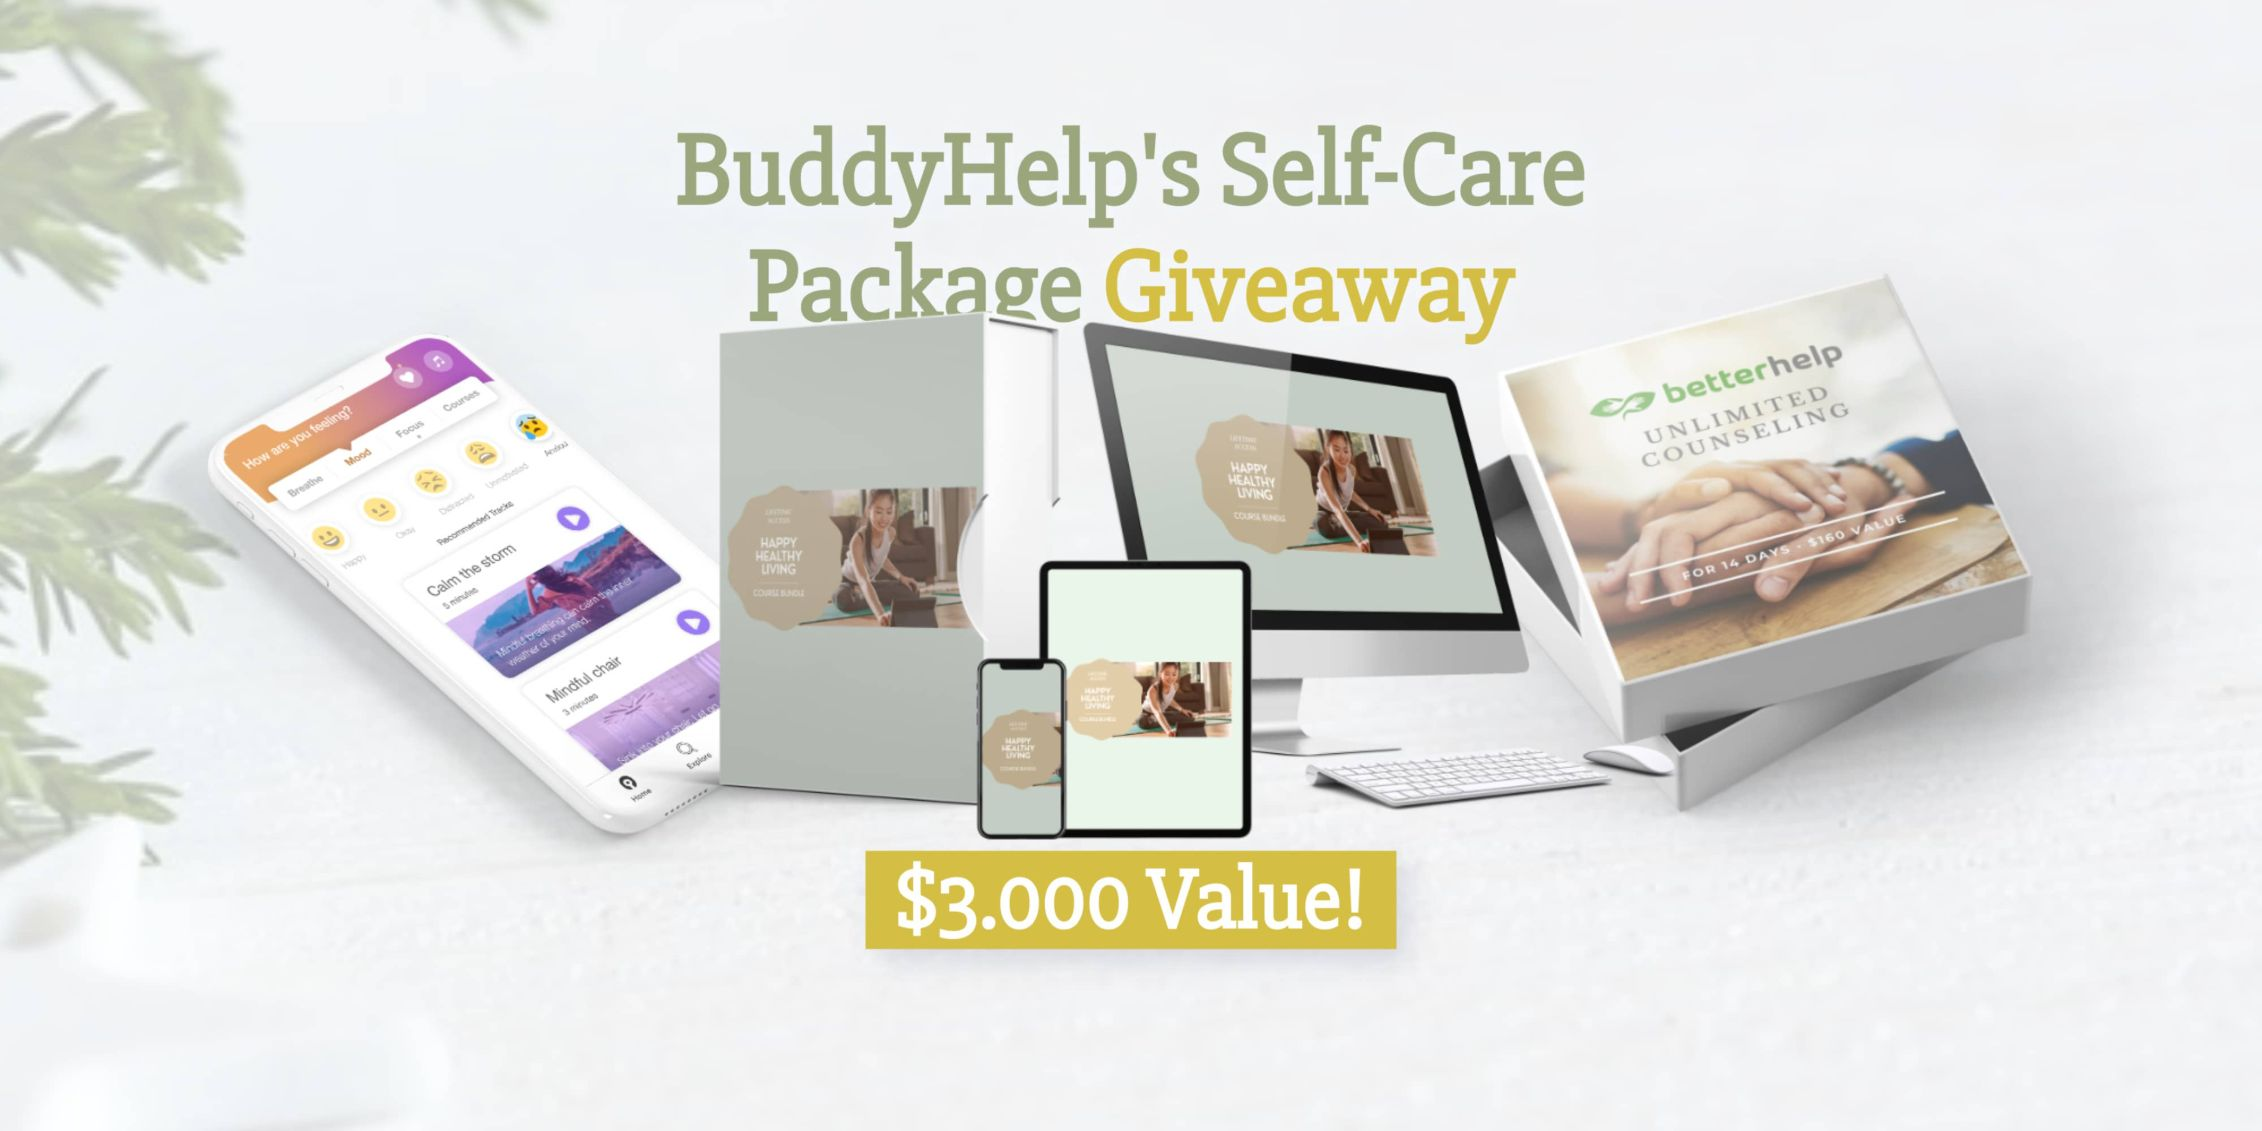 Buddyhelp self-care package giveaway